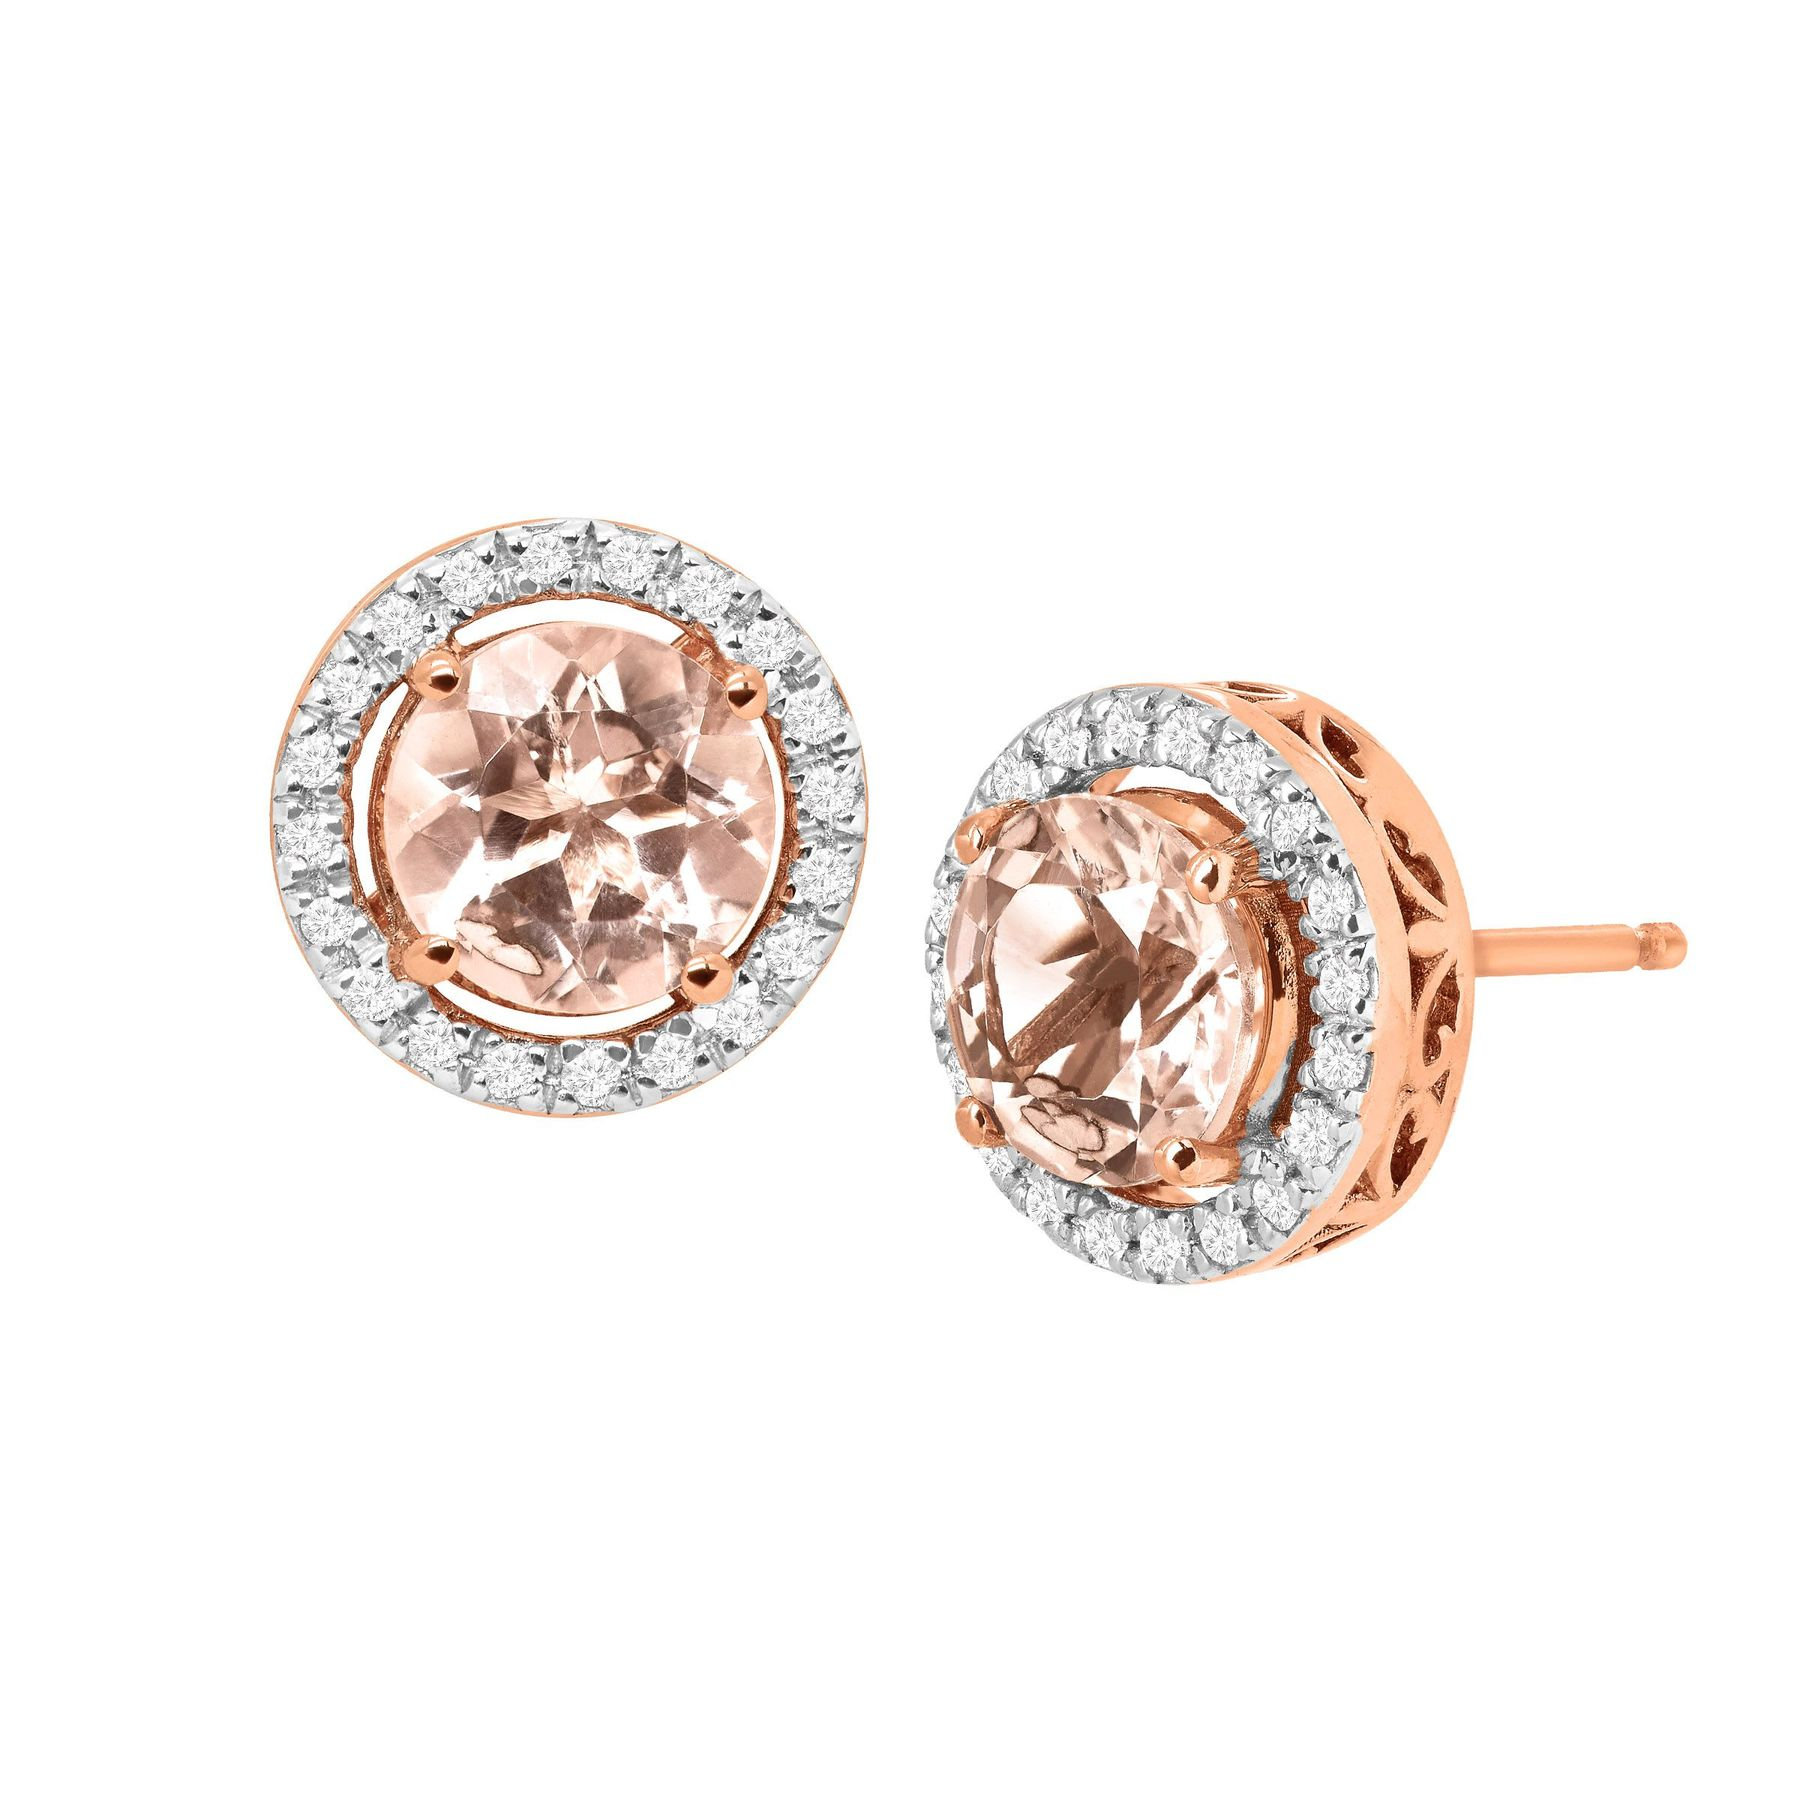 jewellery gifts uk apparel rose p costco and earrings stud morganite gold